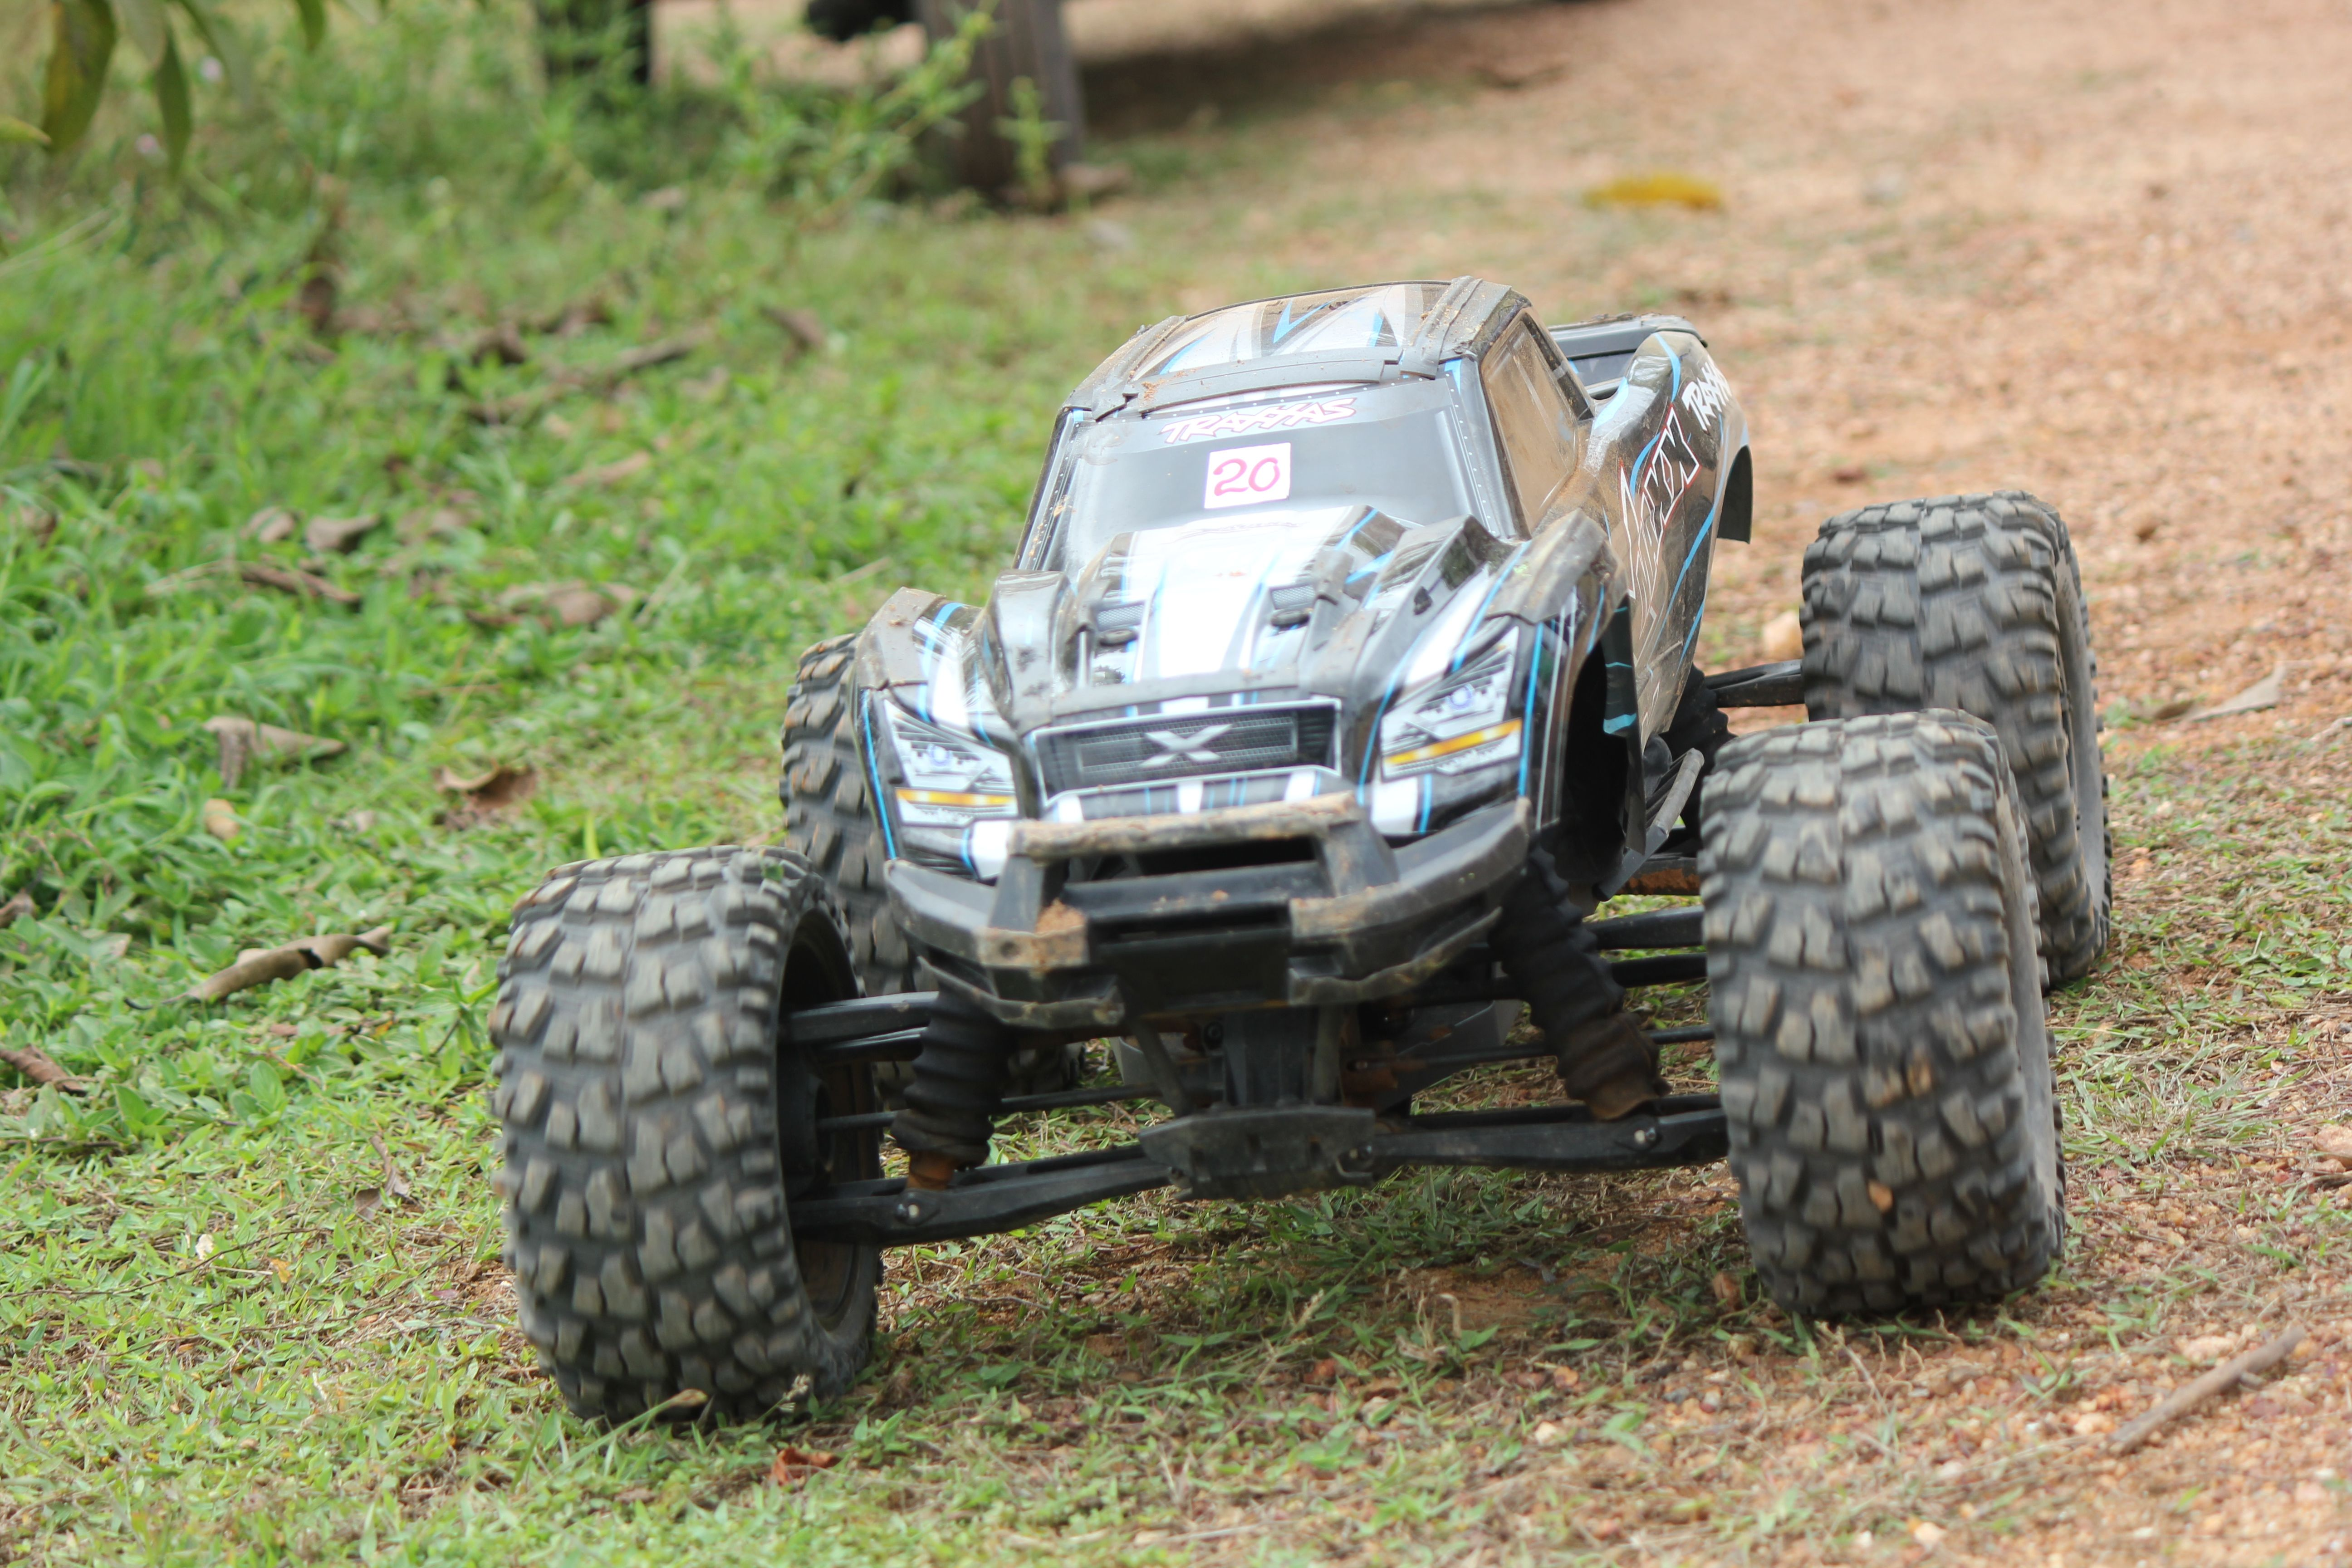 Monster Truck Hd Images Off Road Competition Srilanka Traxxas X